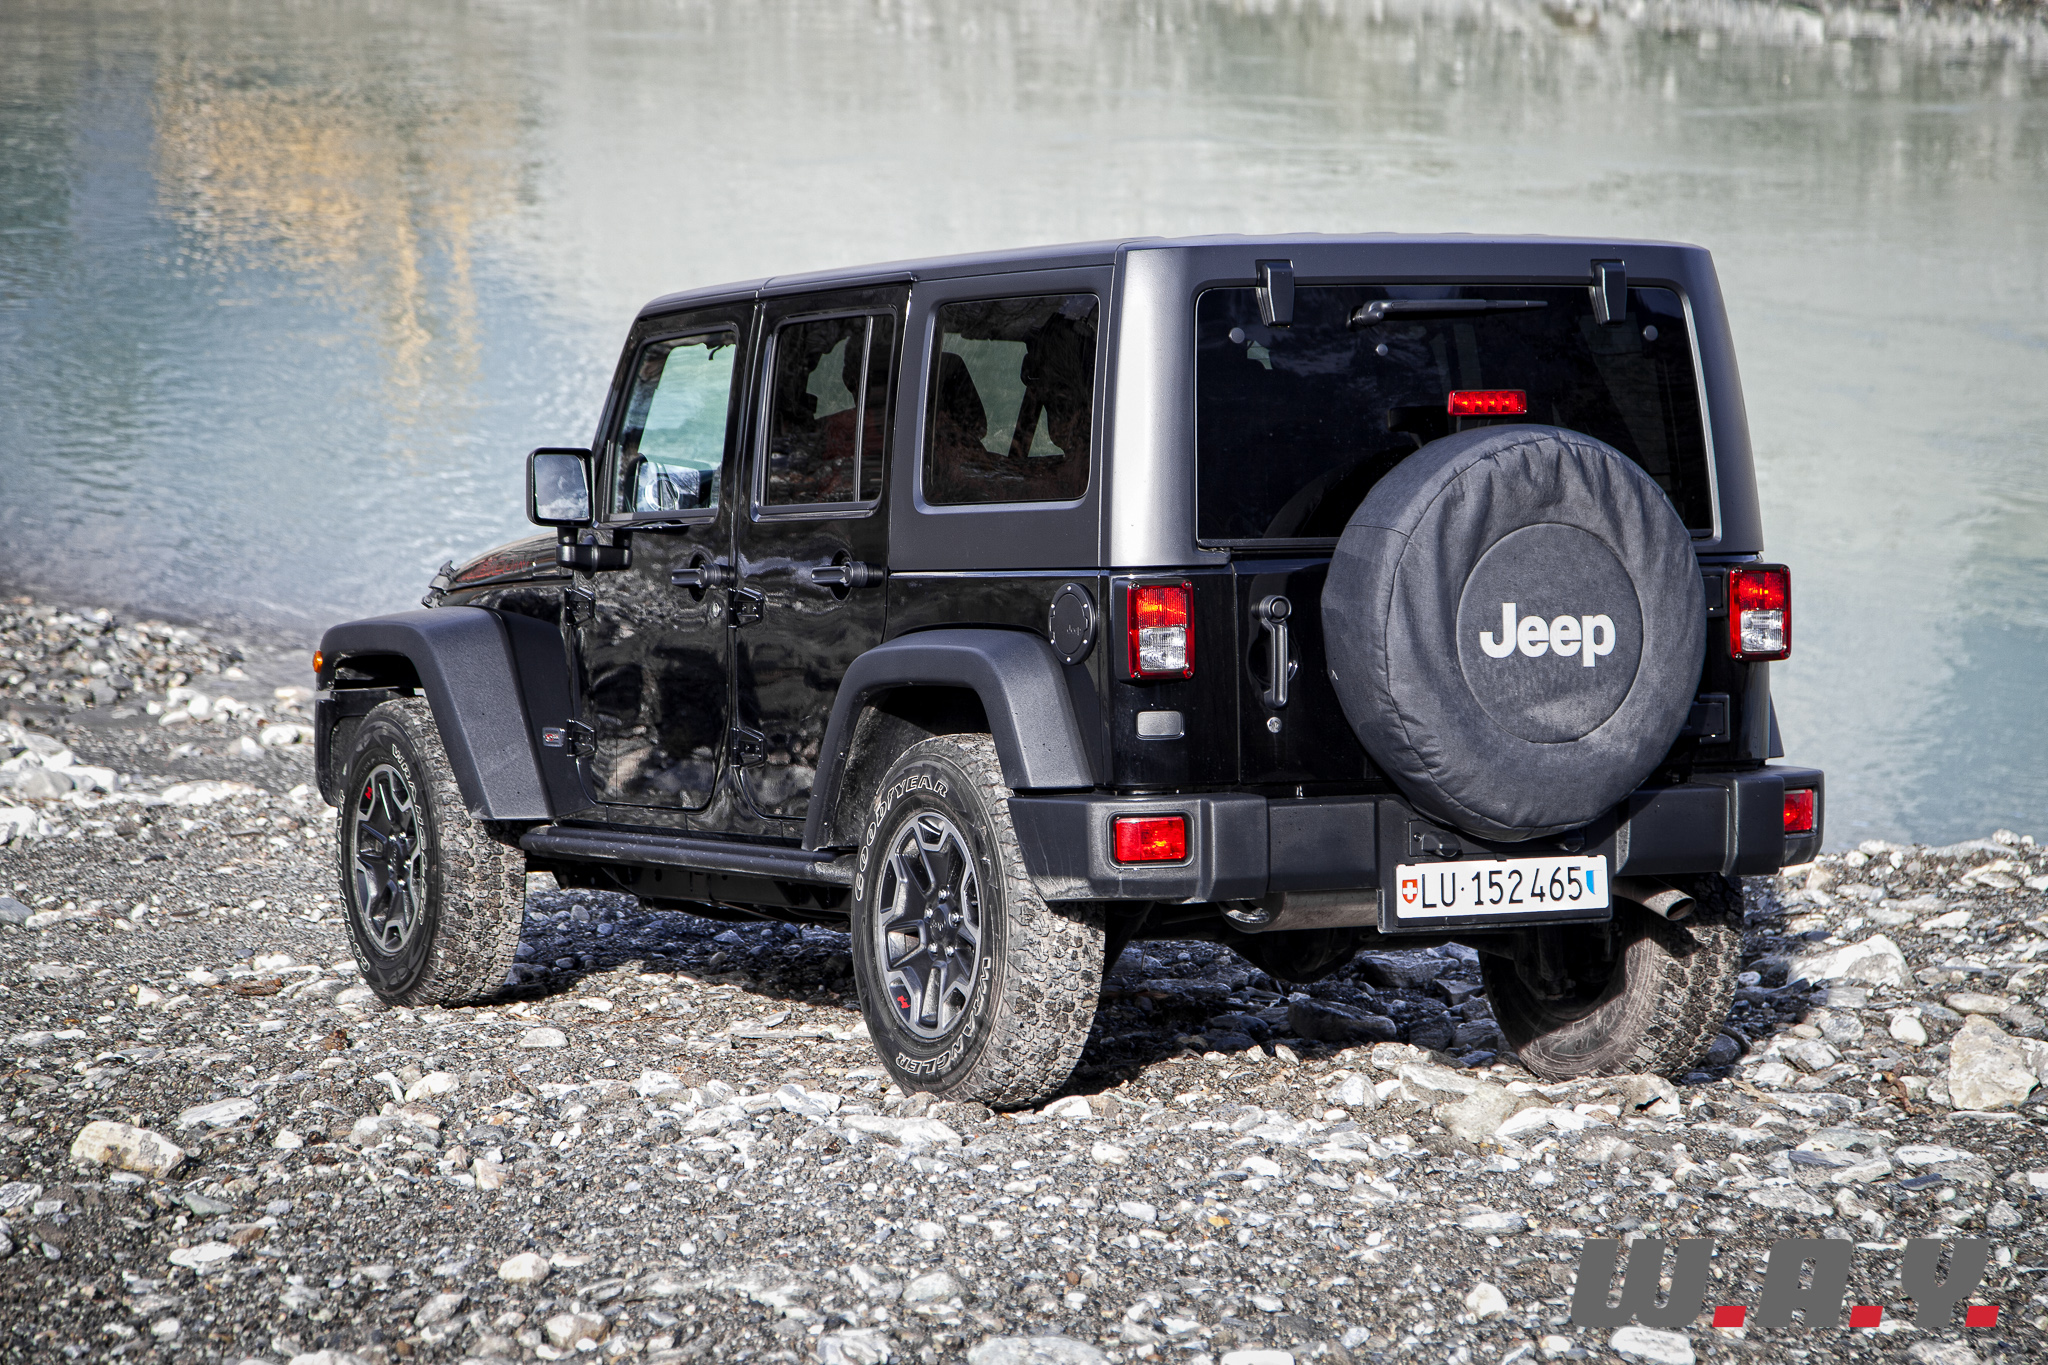 essai jeep wrangler v6 3 6 le dernier des mohicans wheels and. Black Bedroom Furniture Sets. Home Design Ideas